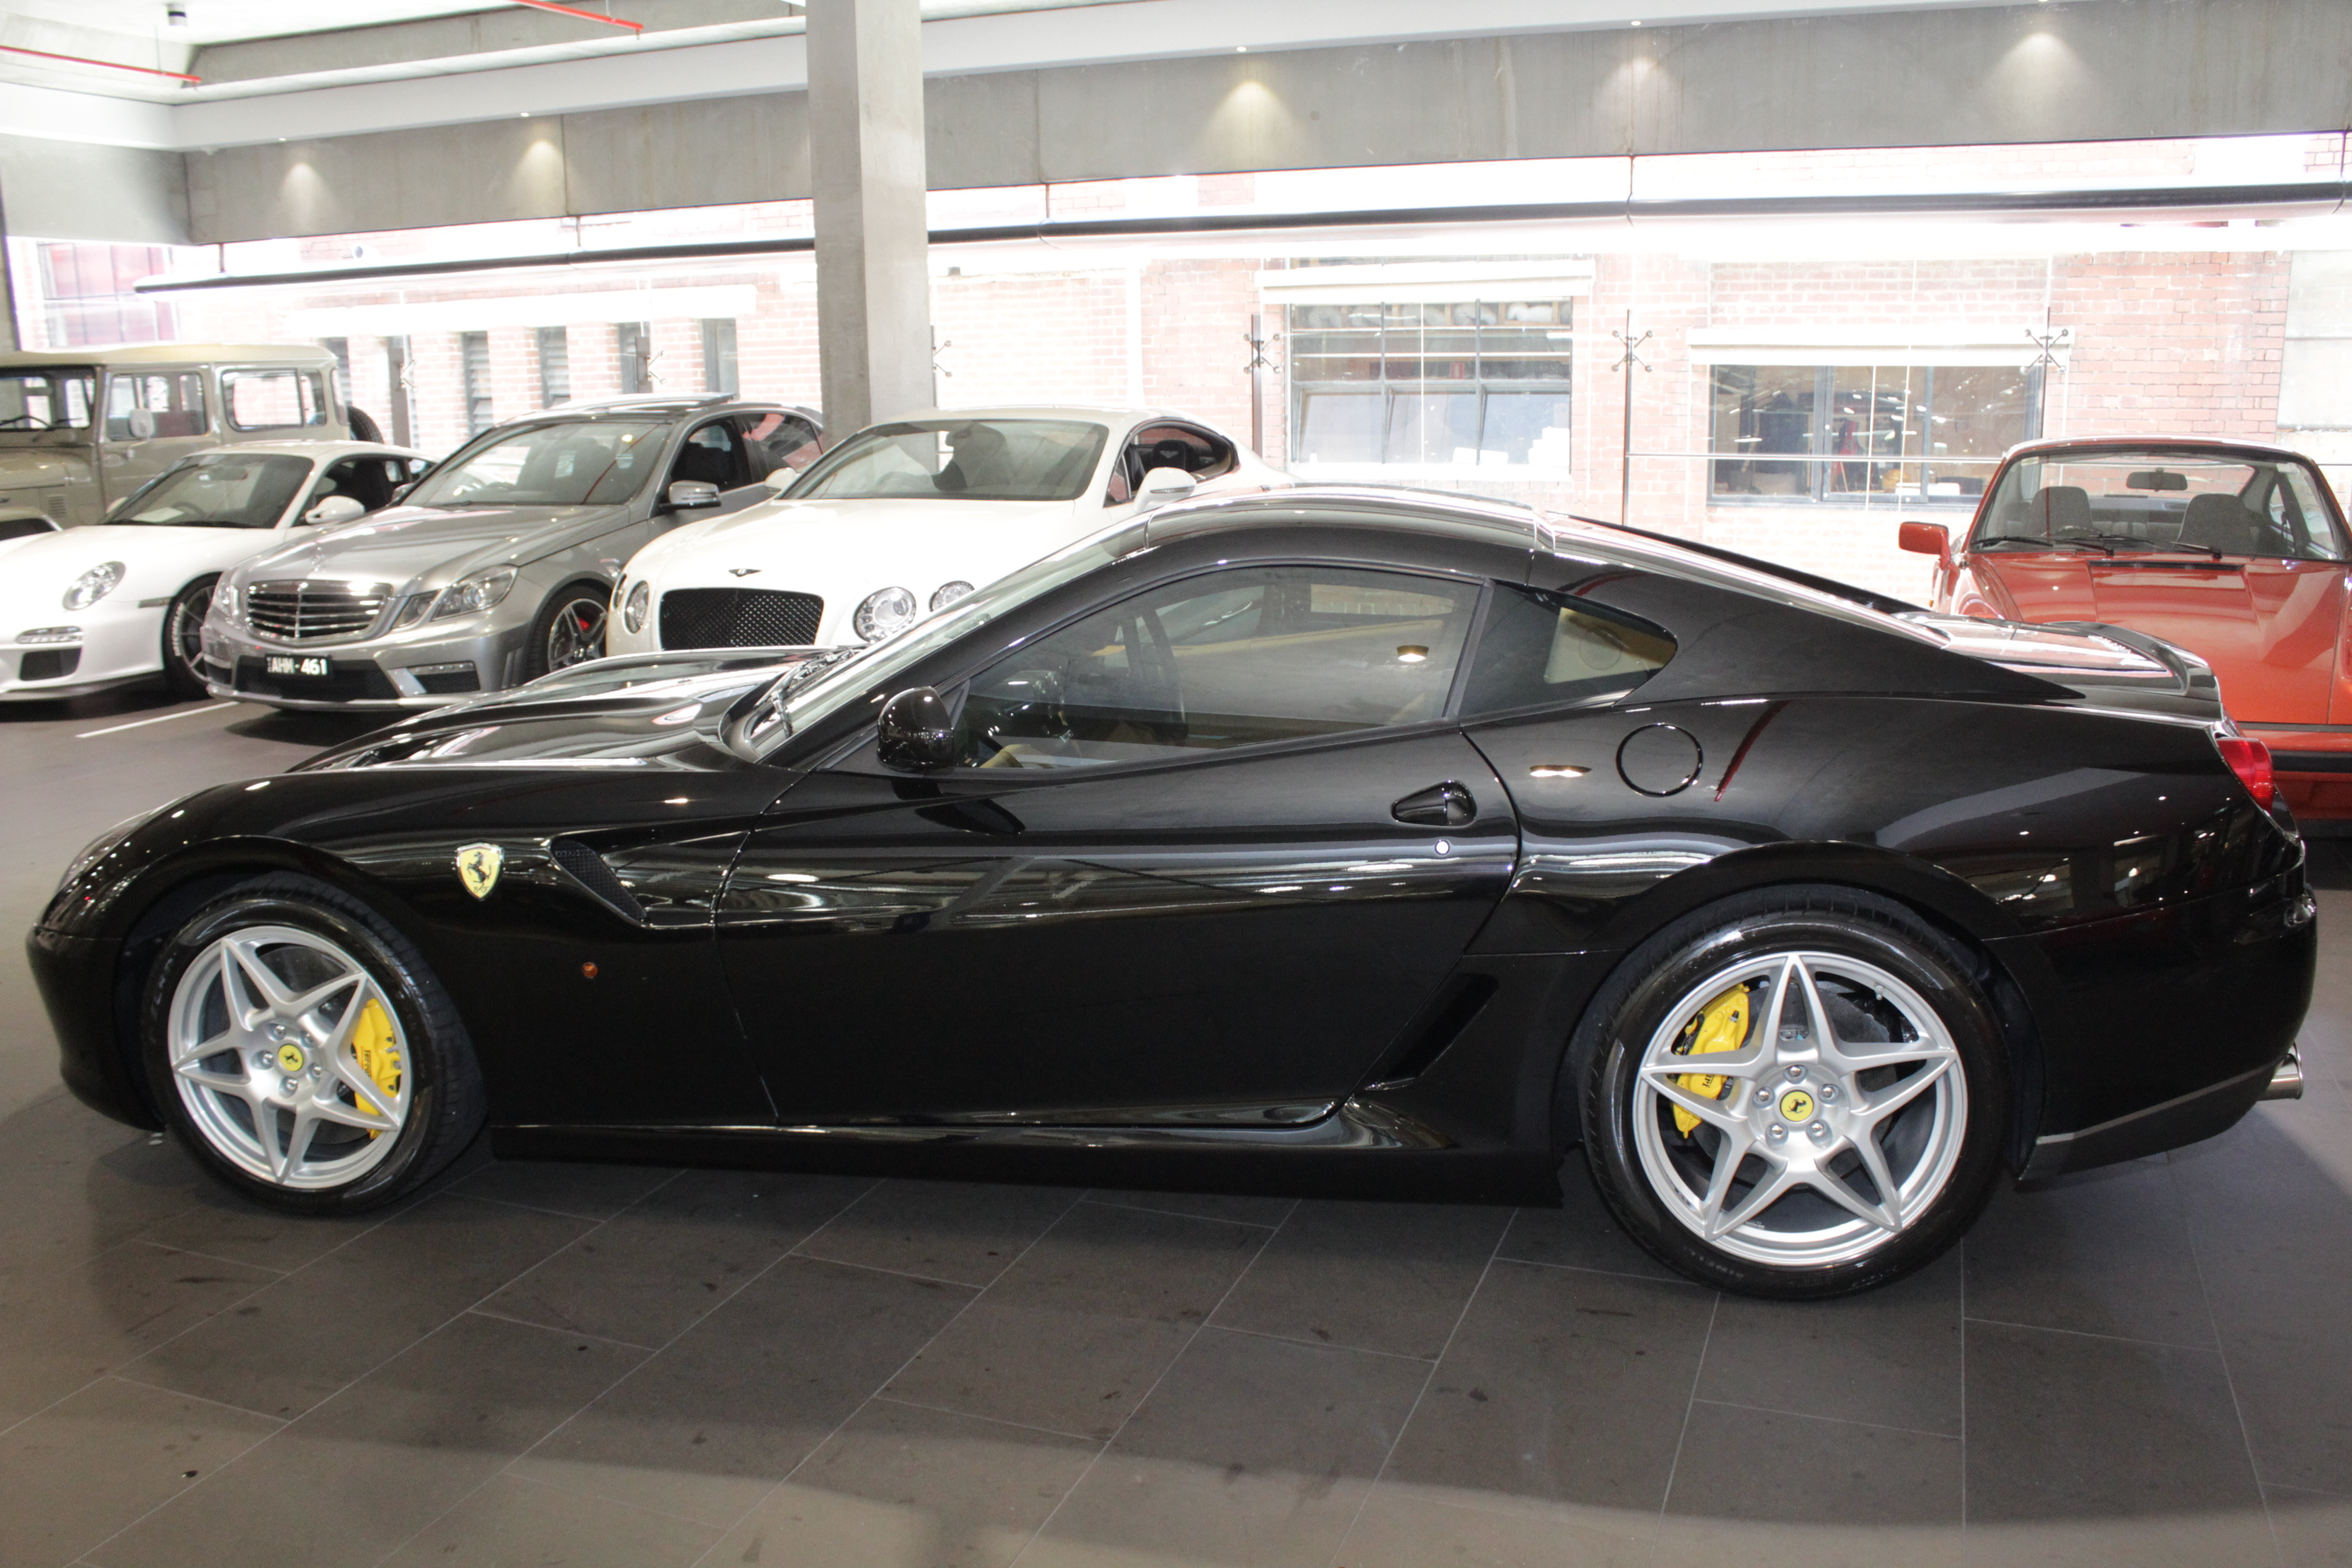 gve sale vehicles for ferrari image gallery hgte new london fiorano luxury edit gtb